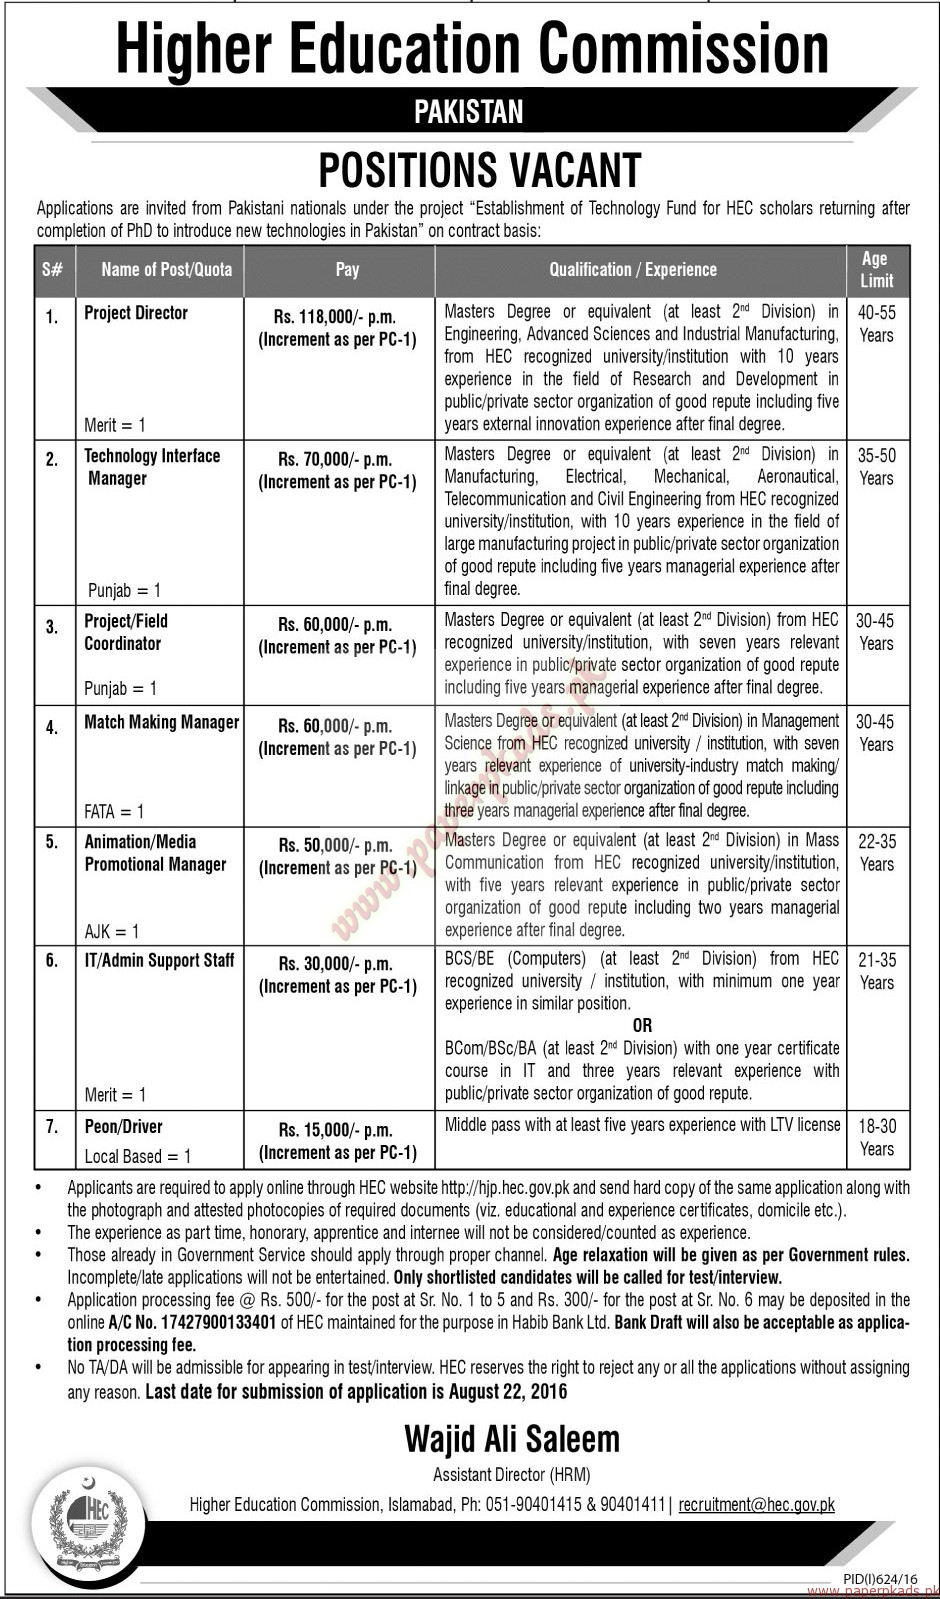 Higher Education Commission Jobs - Jang Jobs ads 07 August 2016 ...